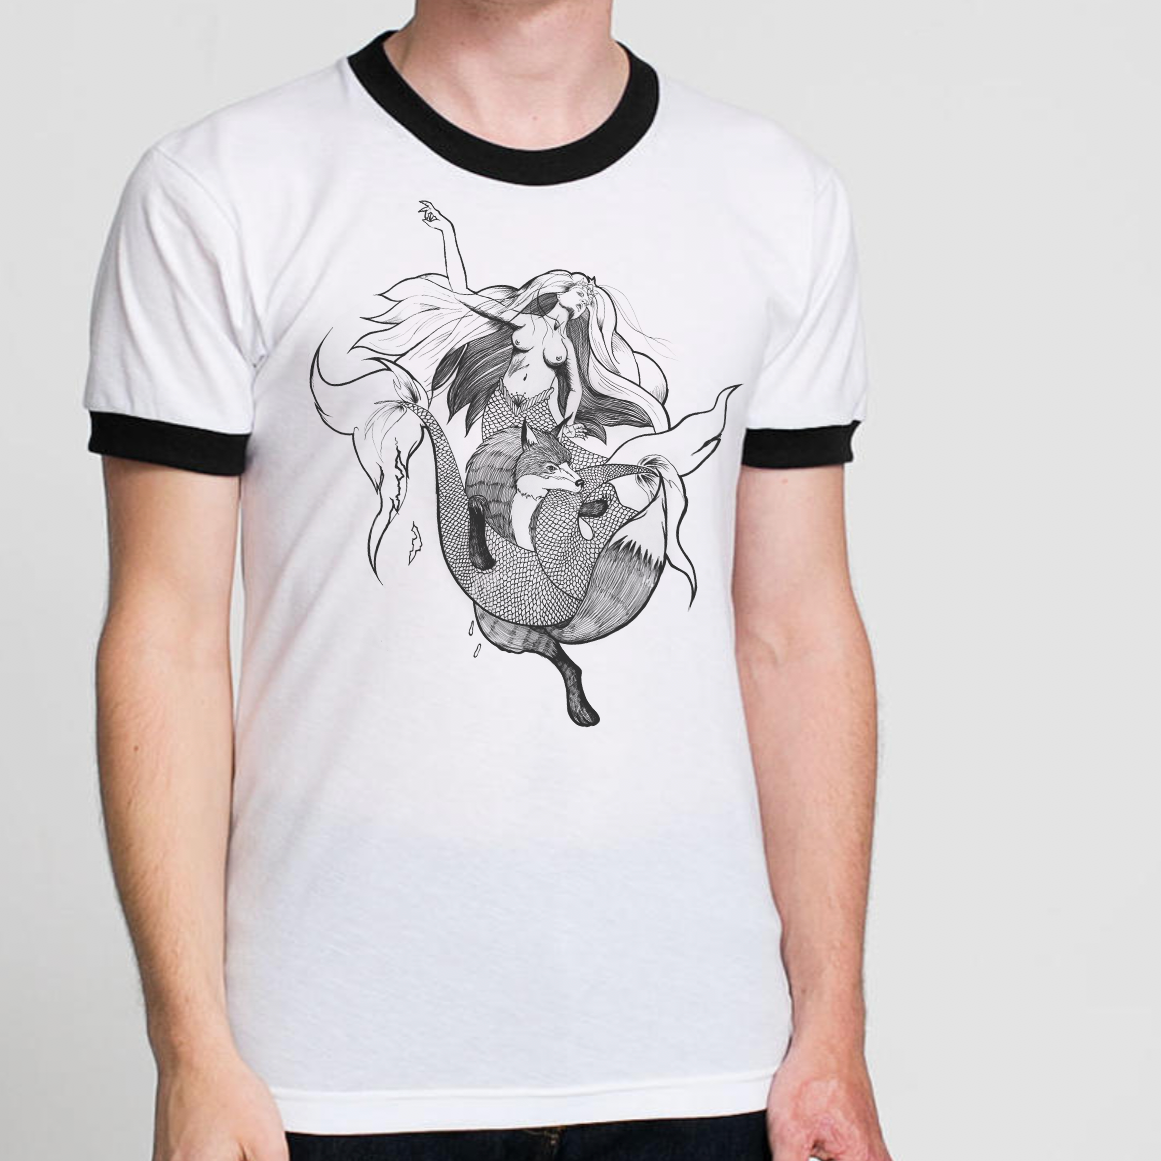 THE FOX AND THE MERMAID - A REBELLIOUS DESIGN AGAINST BIG CHAIN COFFEE SHOPS,DESIGNED AND PRINTED IN HOUSE.